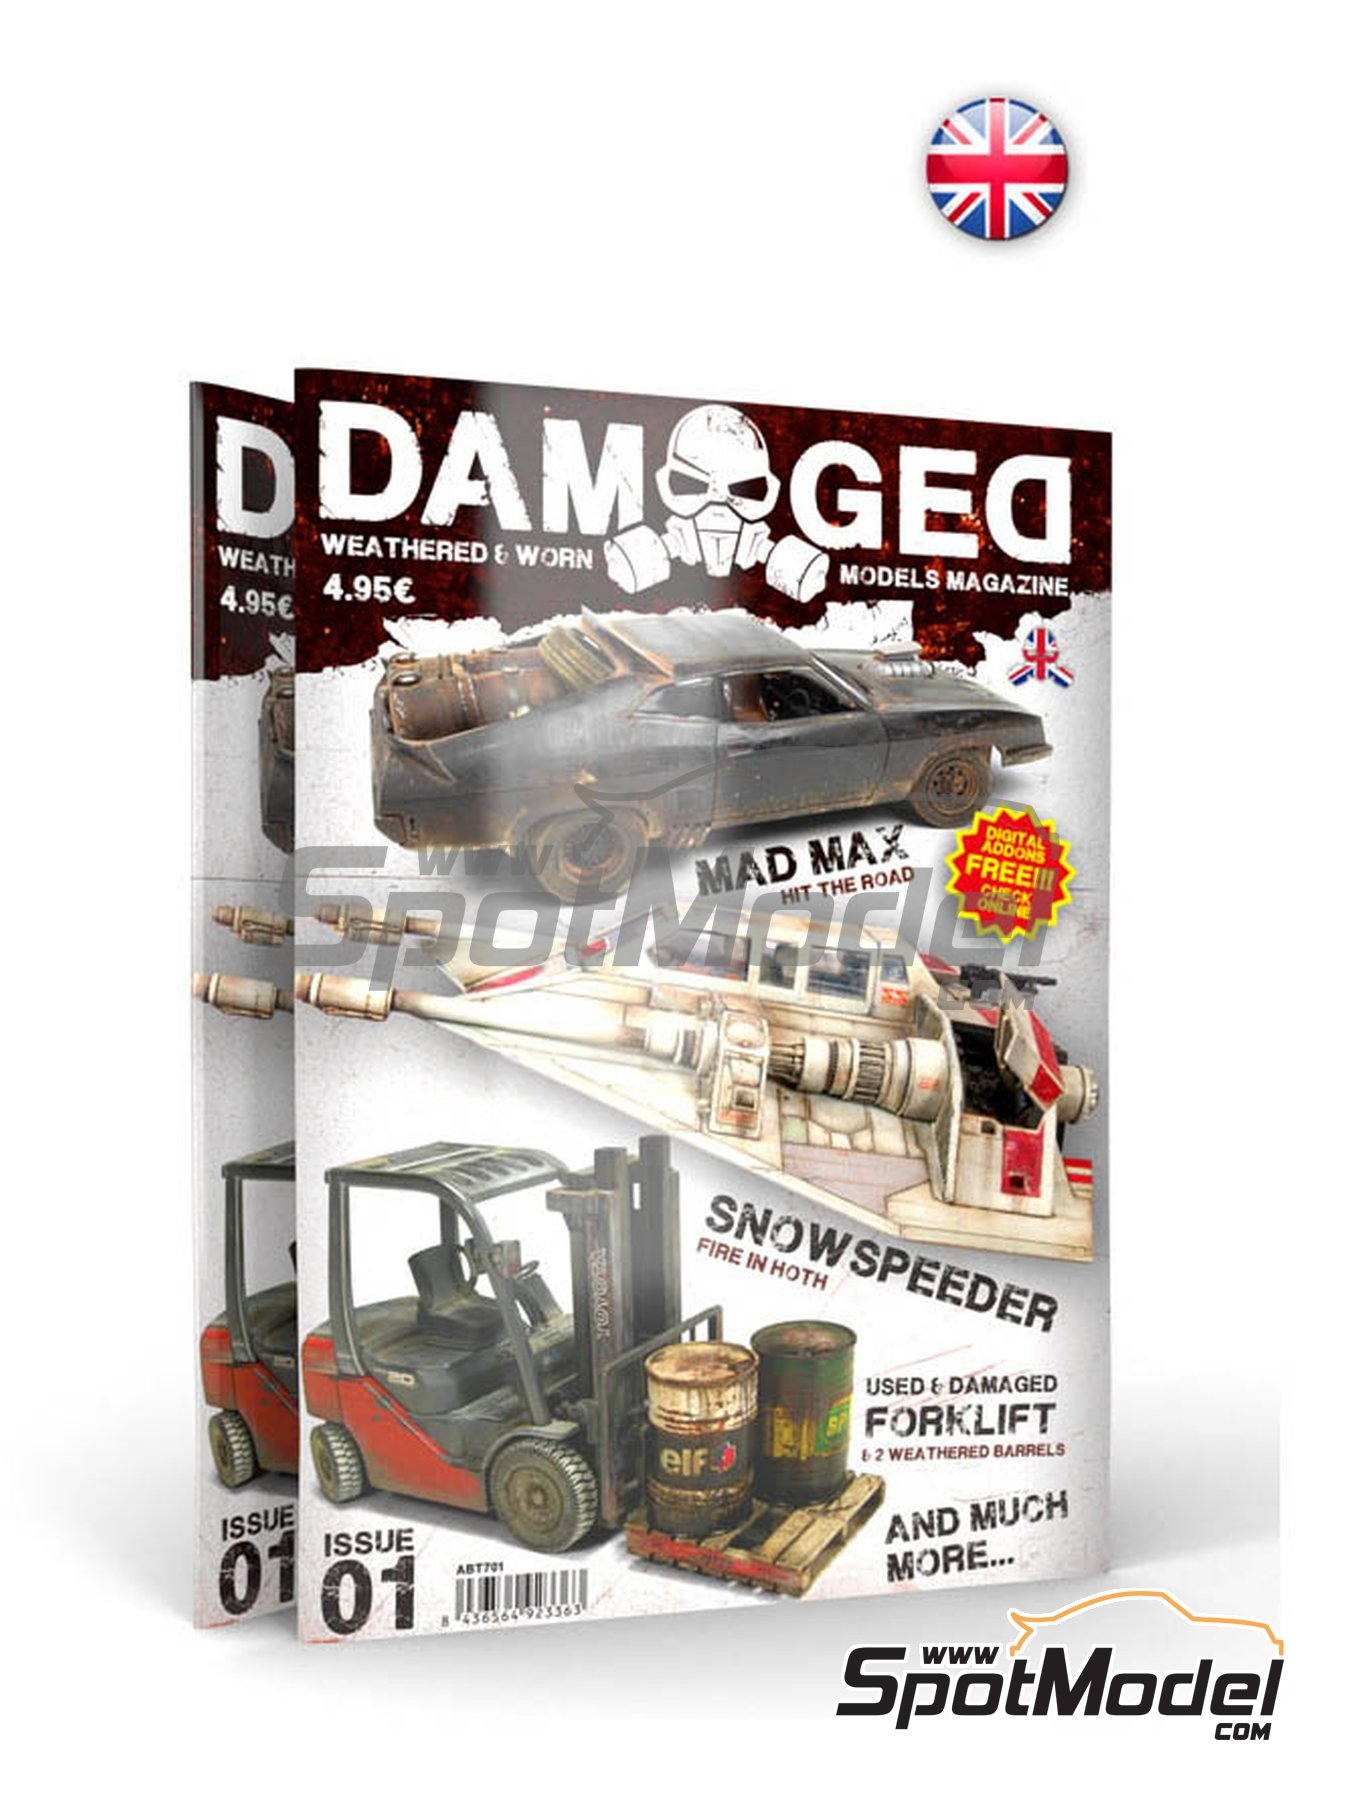 Damaged - Weathered and worn: Número 1 - edición en inglés | Revista fabricado por AK Interactive (ref. ABT701) image